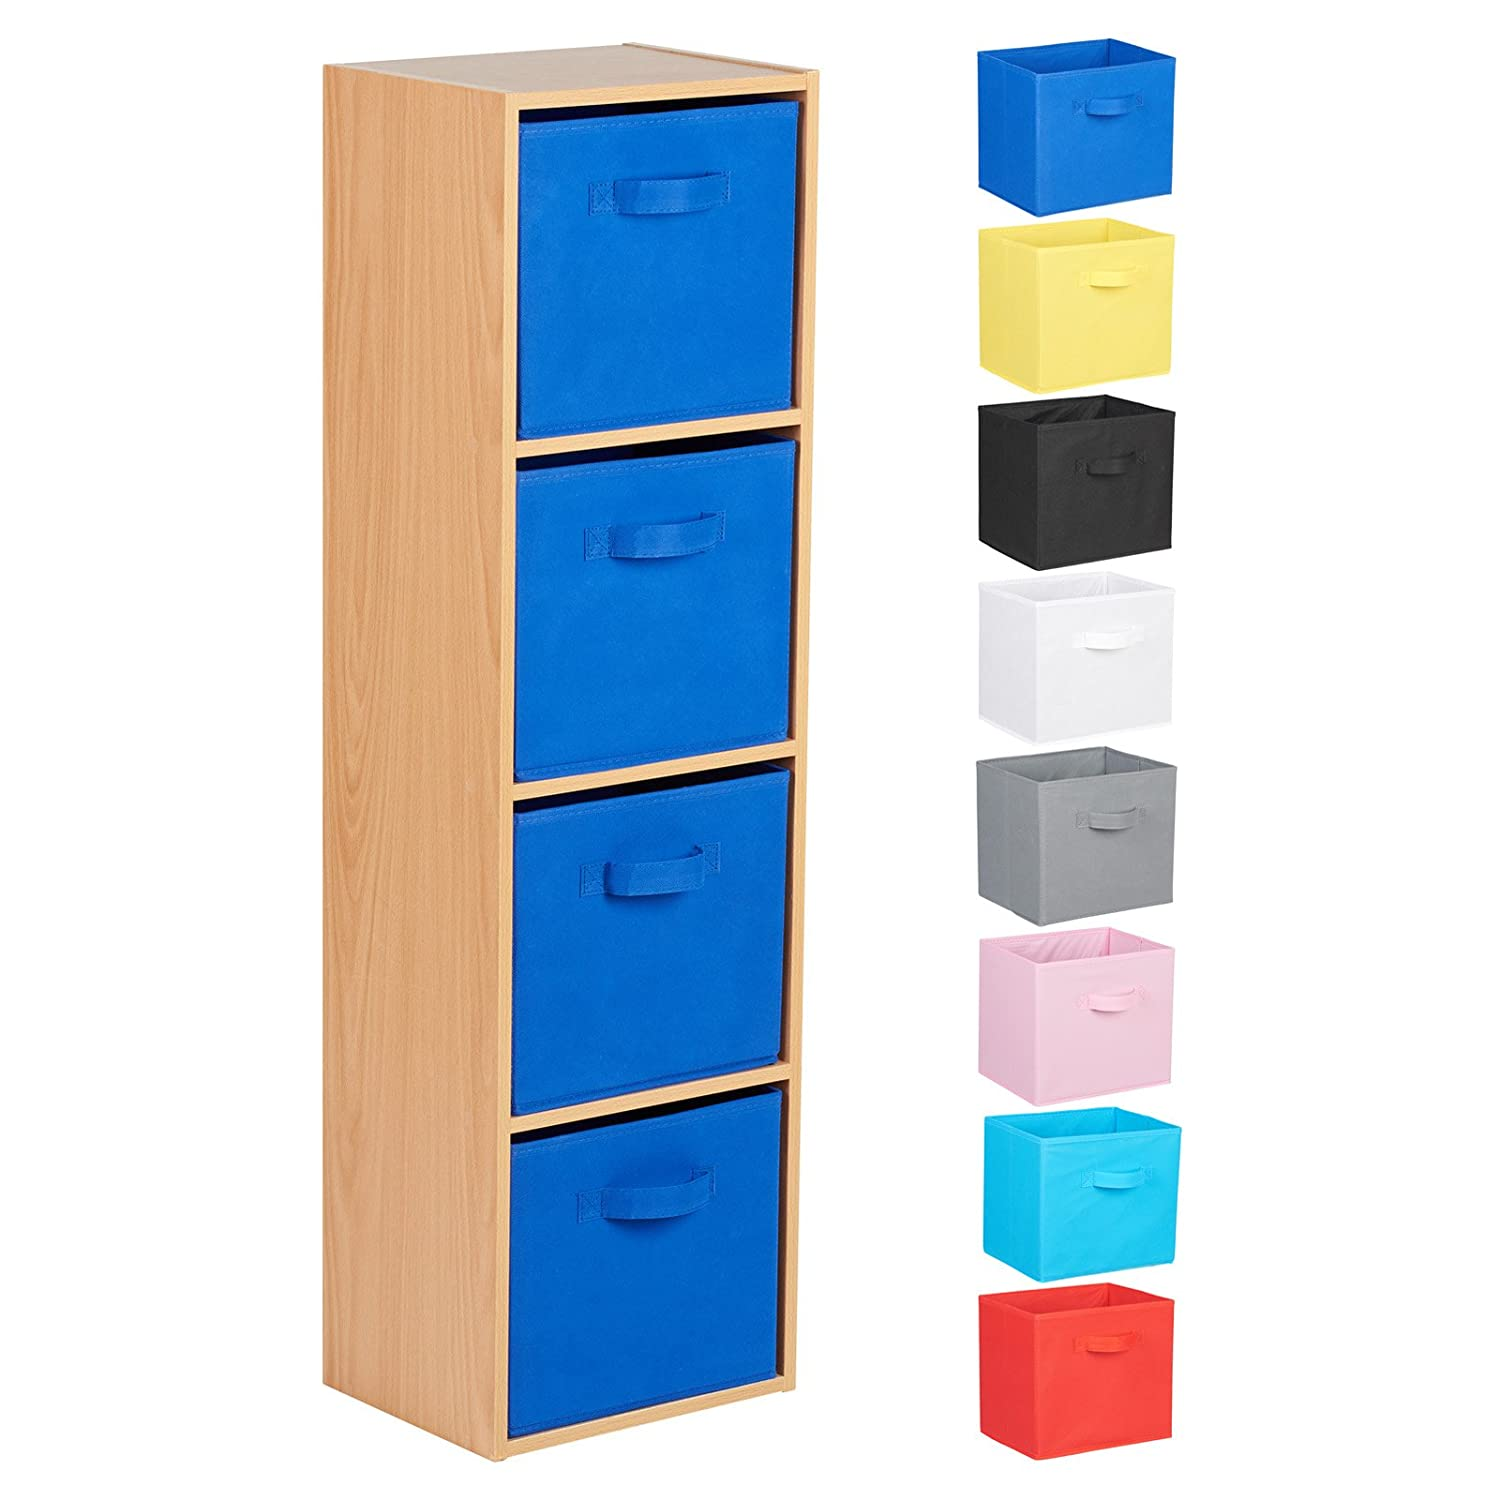 Hartleys 4 Tier Beech Cube Unit & Fabric Storage Boxes - Choice of Colour